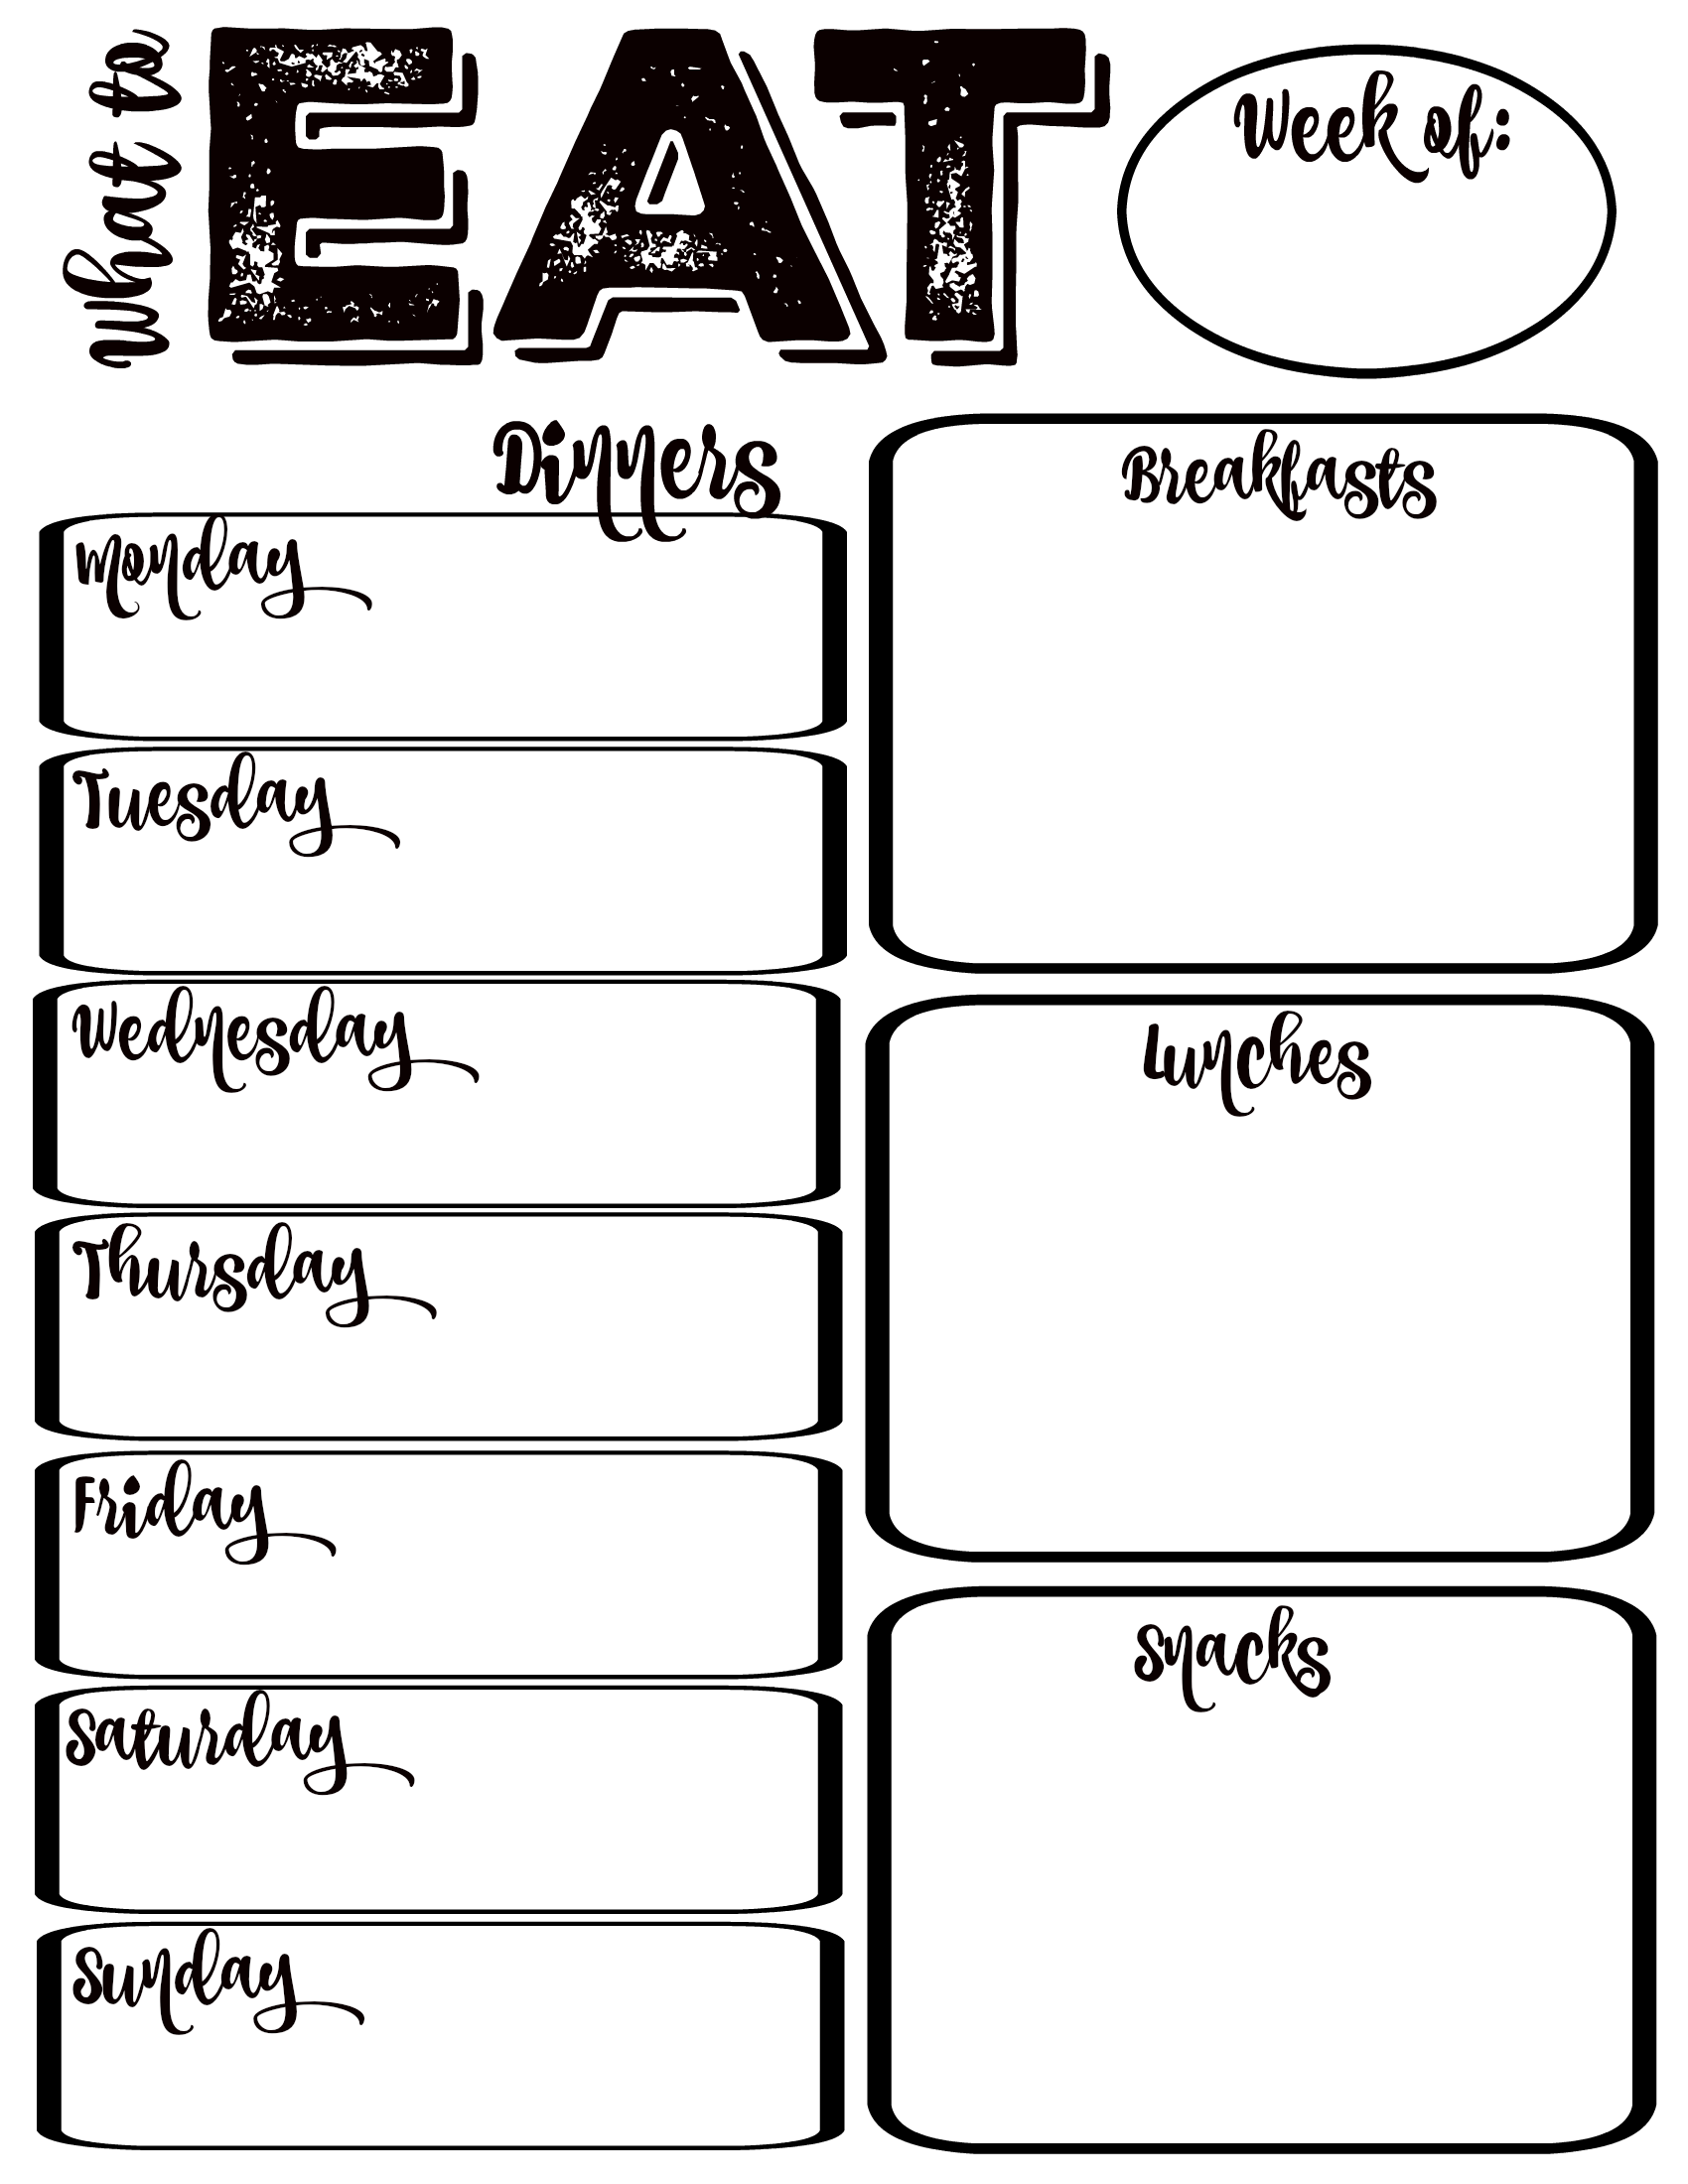 Free Printable What to Eat Weekly Meal Planning at thehappyhousie.com